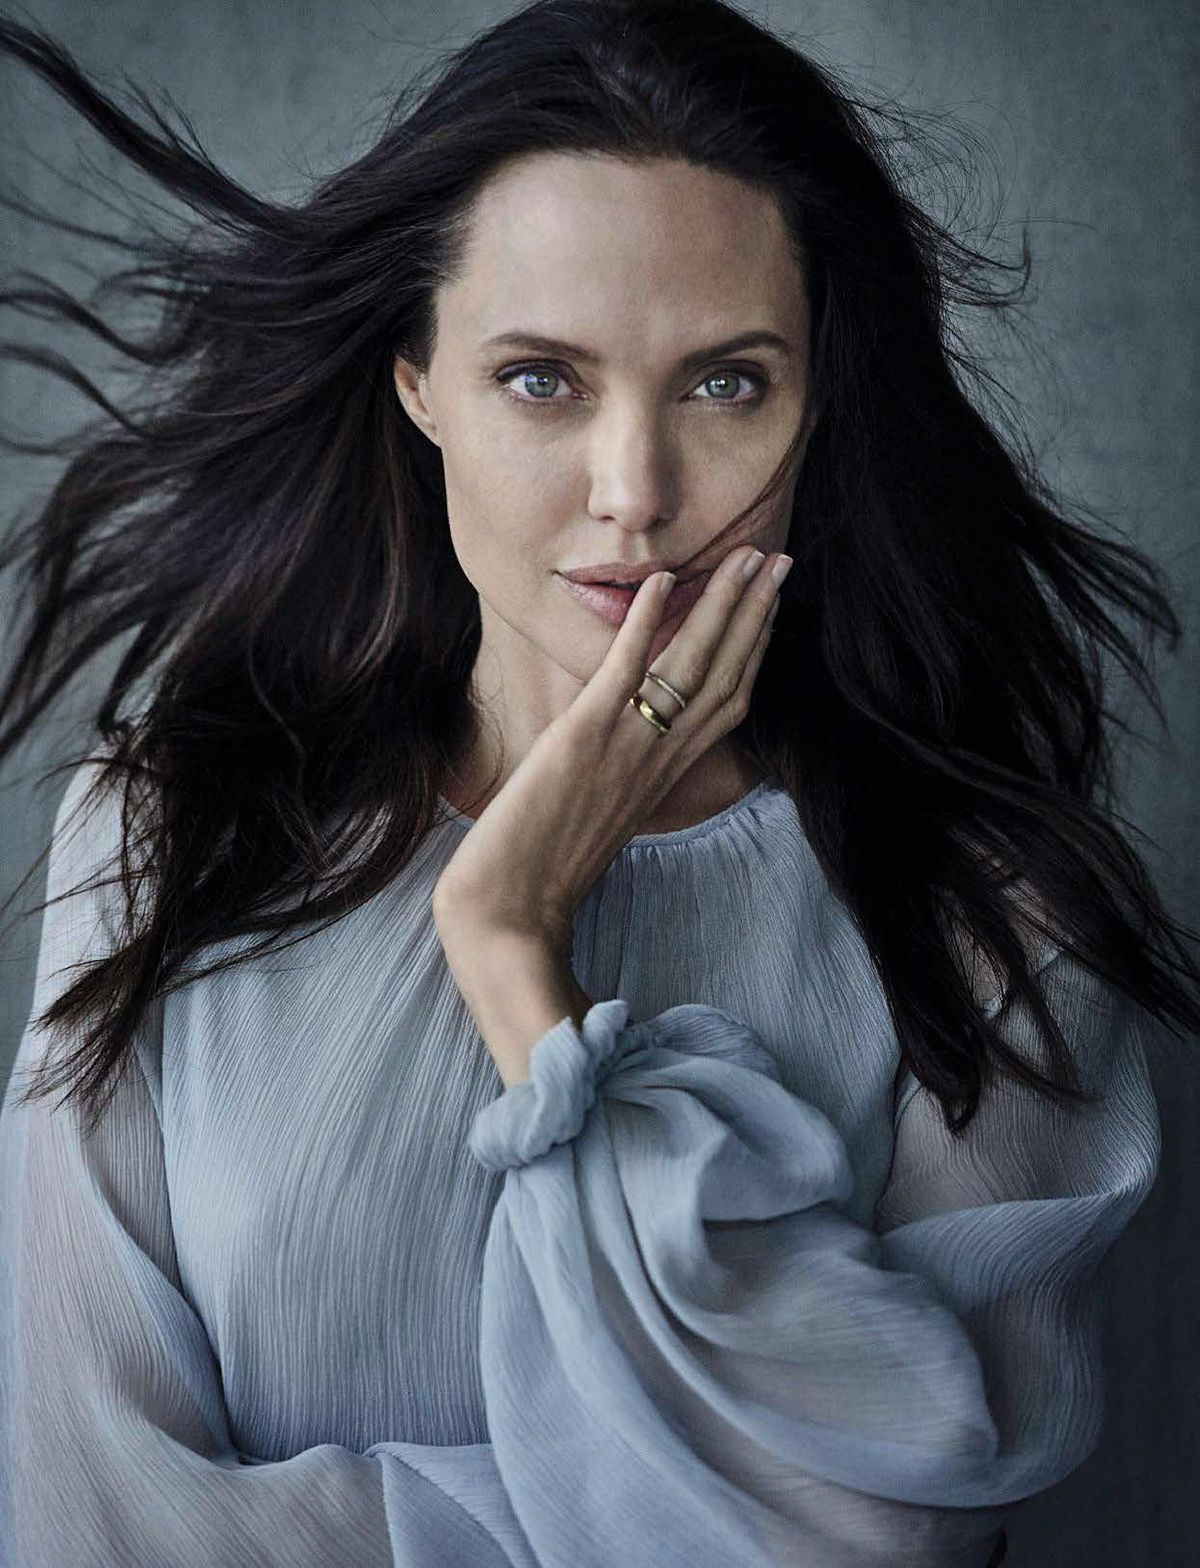 ANGELINA JOLIE by Peter Lindbergh for Vanity Fair Magazine, November 2015 Issue